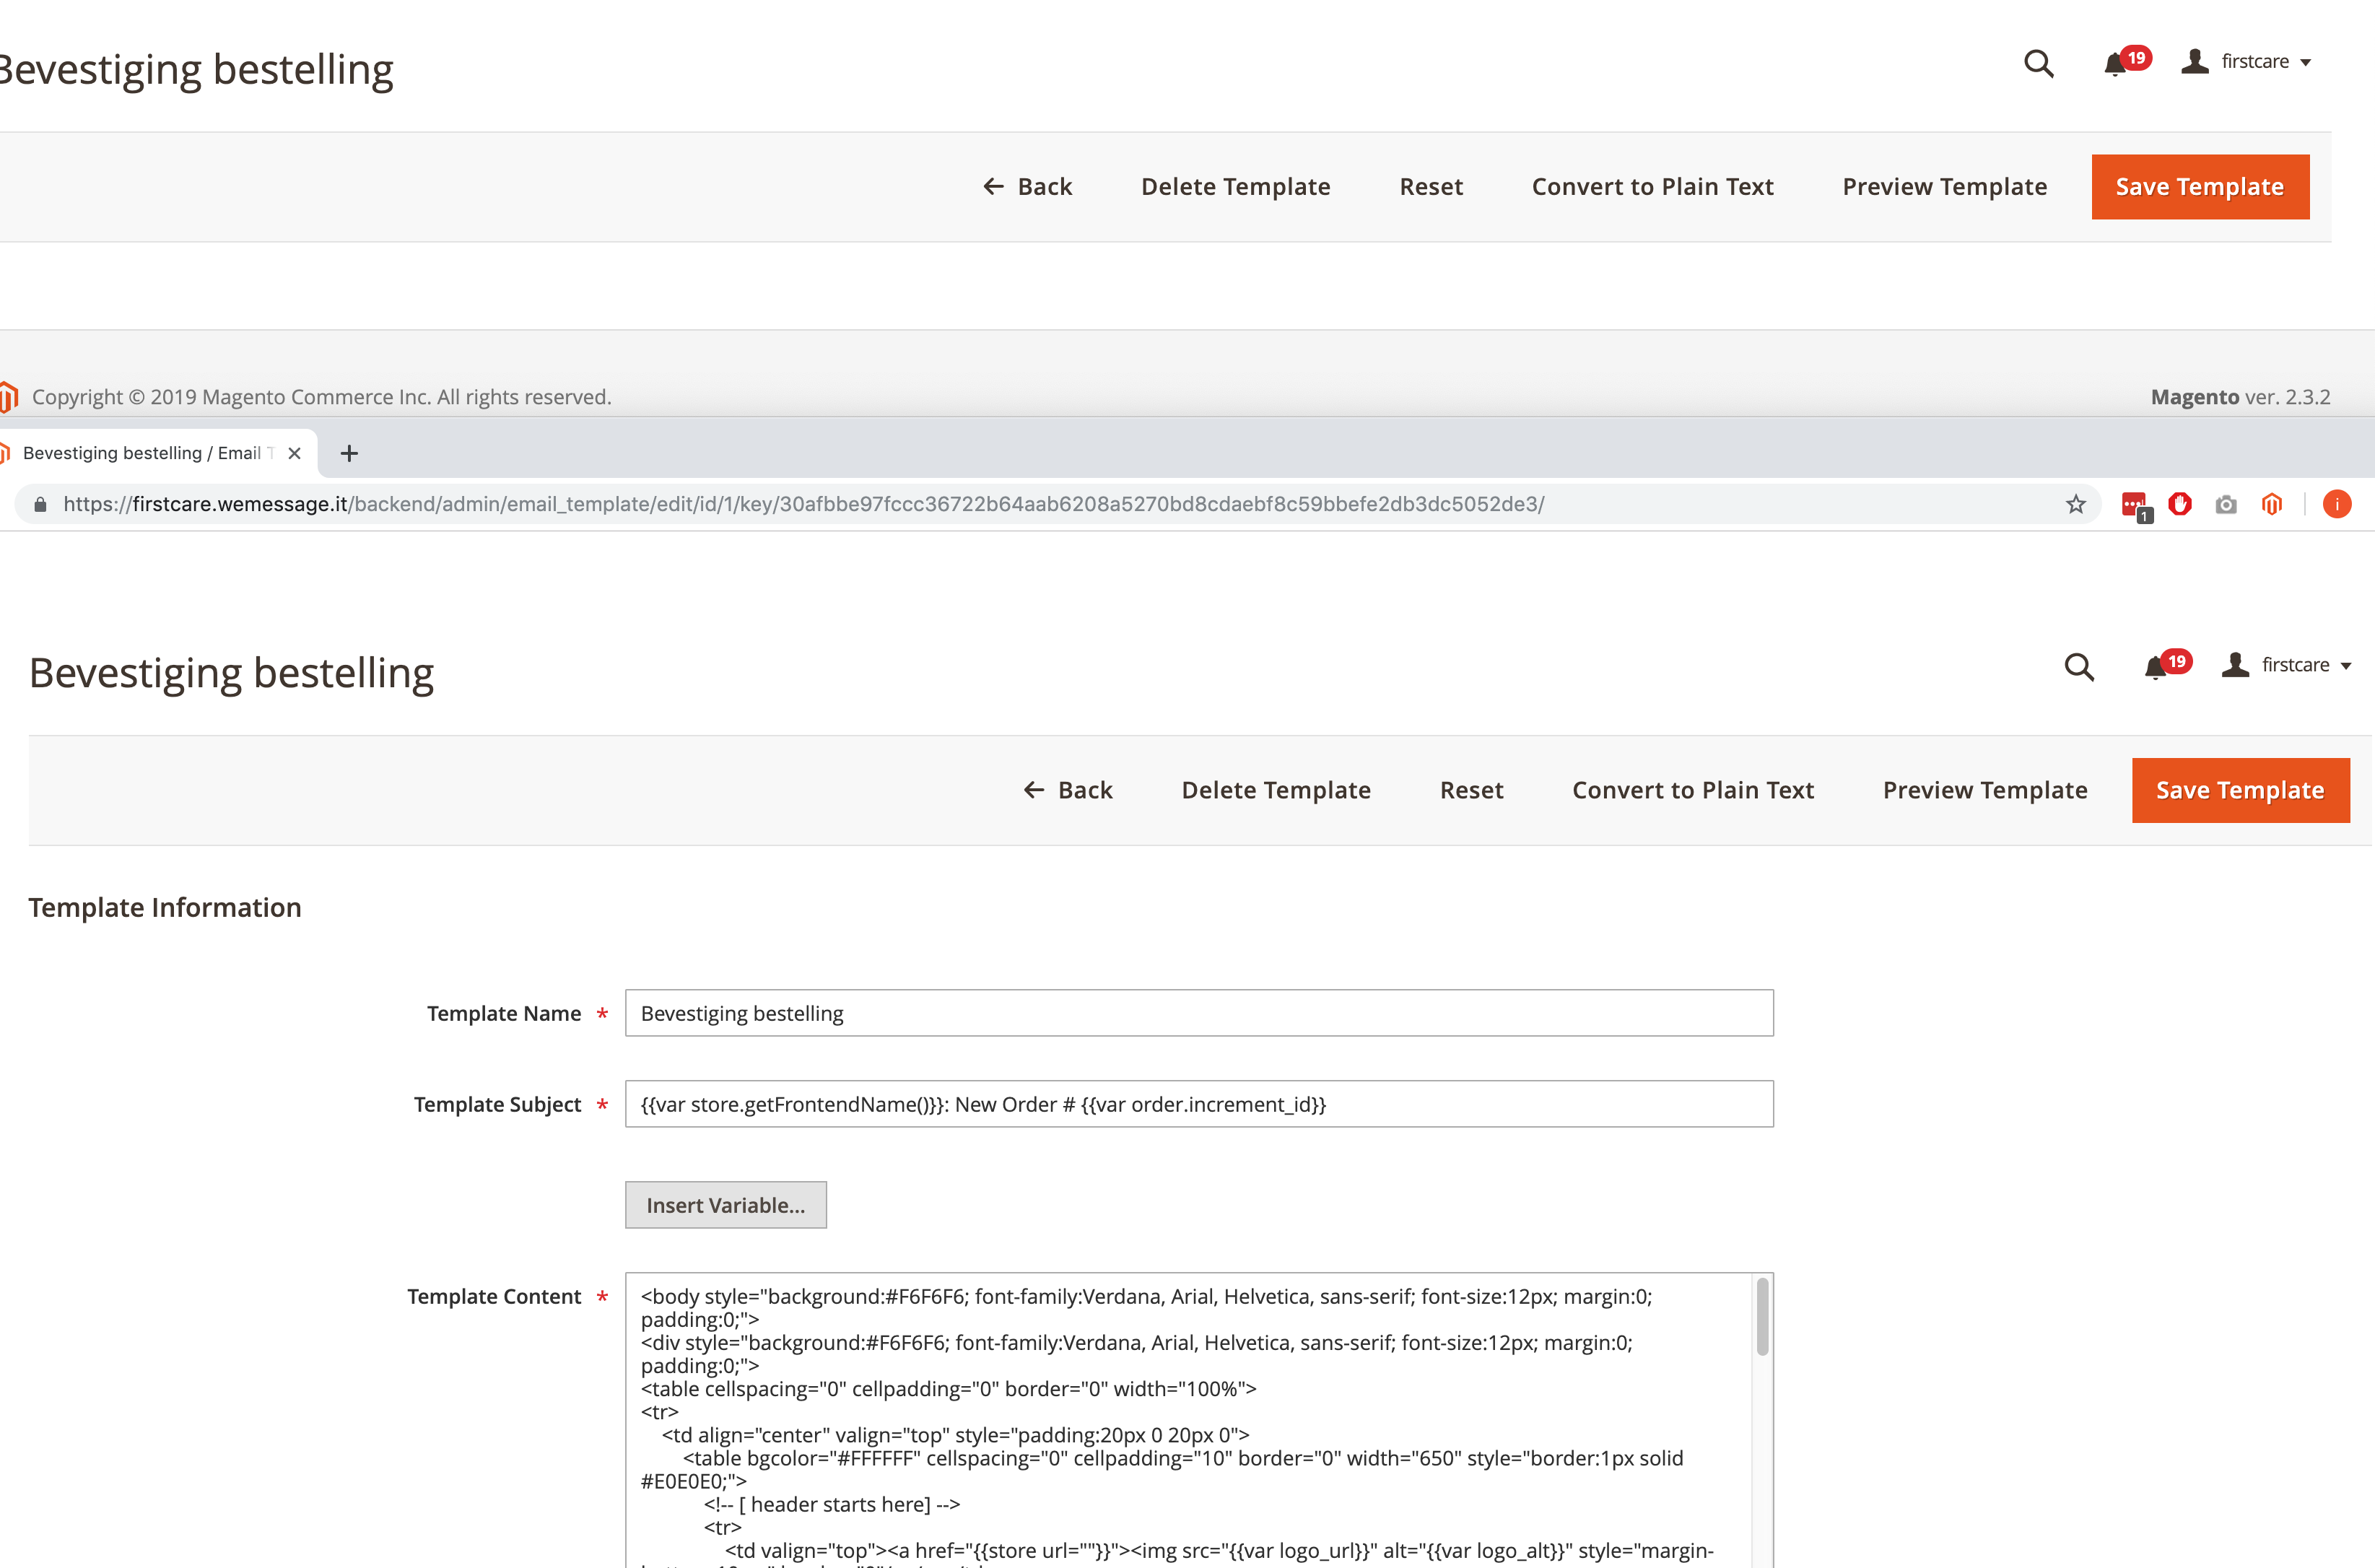 Magento 2 3 2 email templates not editable · Issue #23876